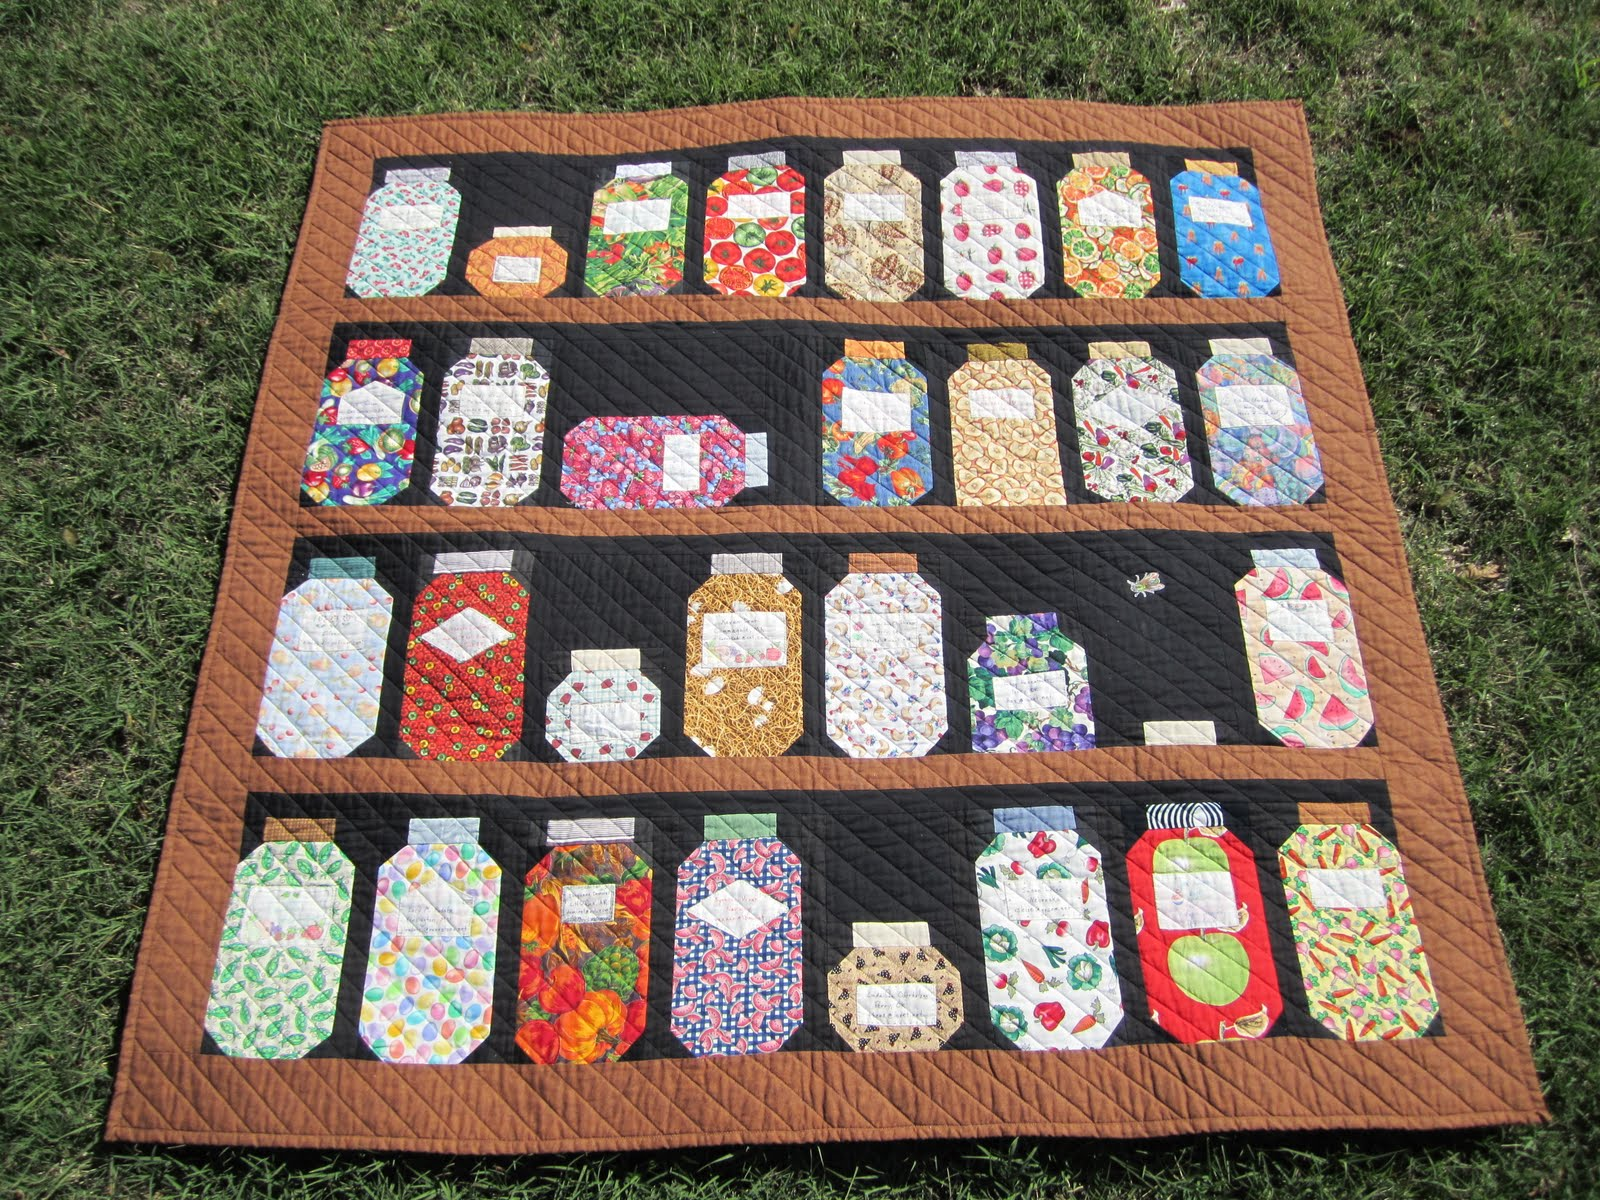 bug jar quilt pattern | eBay - Electronics, Cars, Fashion